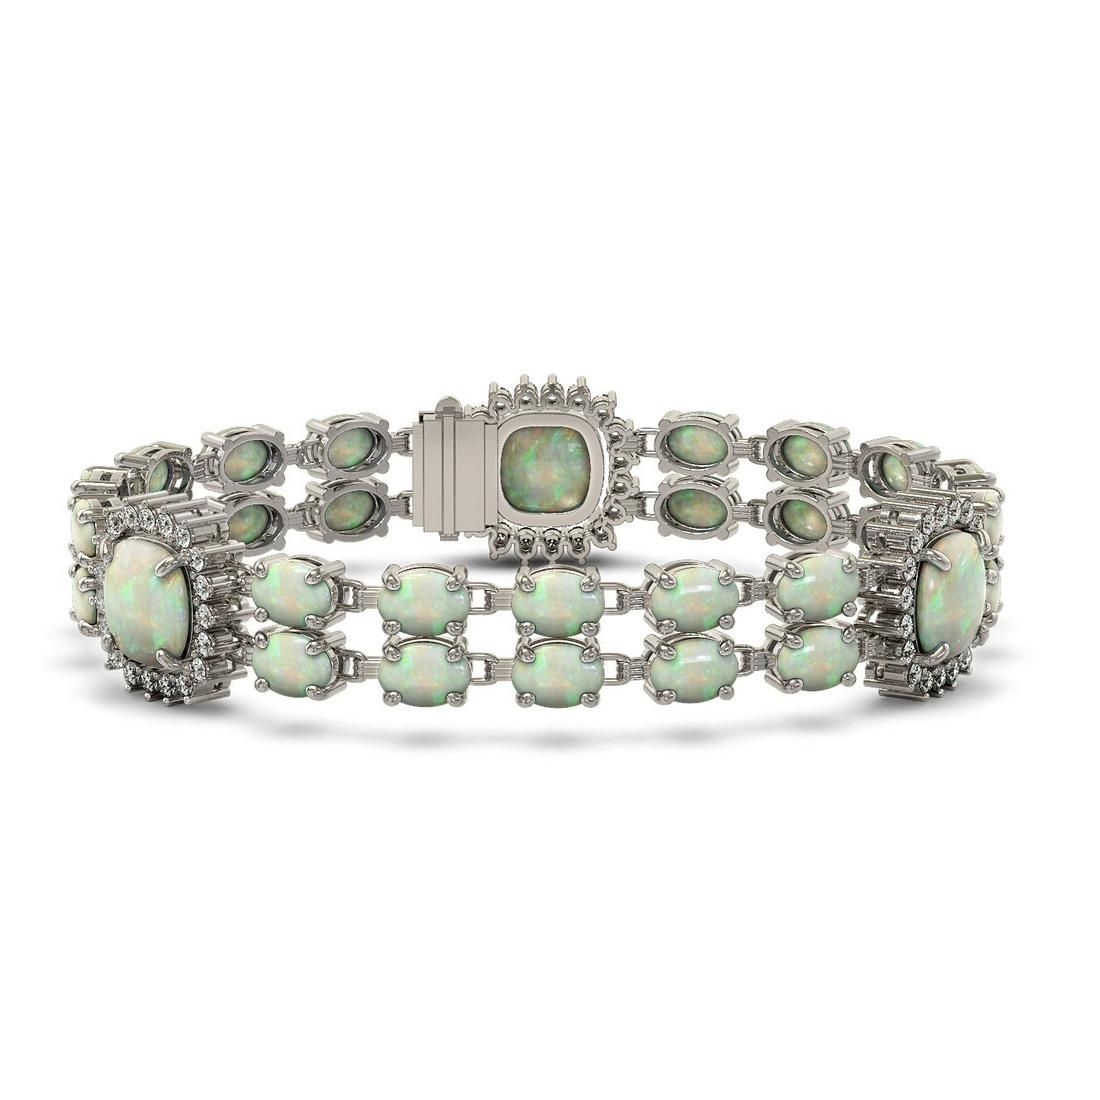 29.7 ctw Opal & Diamond Bracelet 14K White Gold -